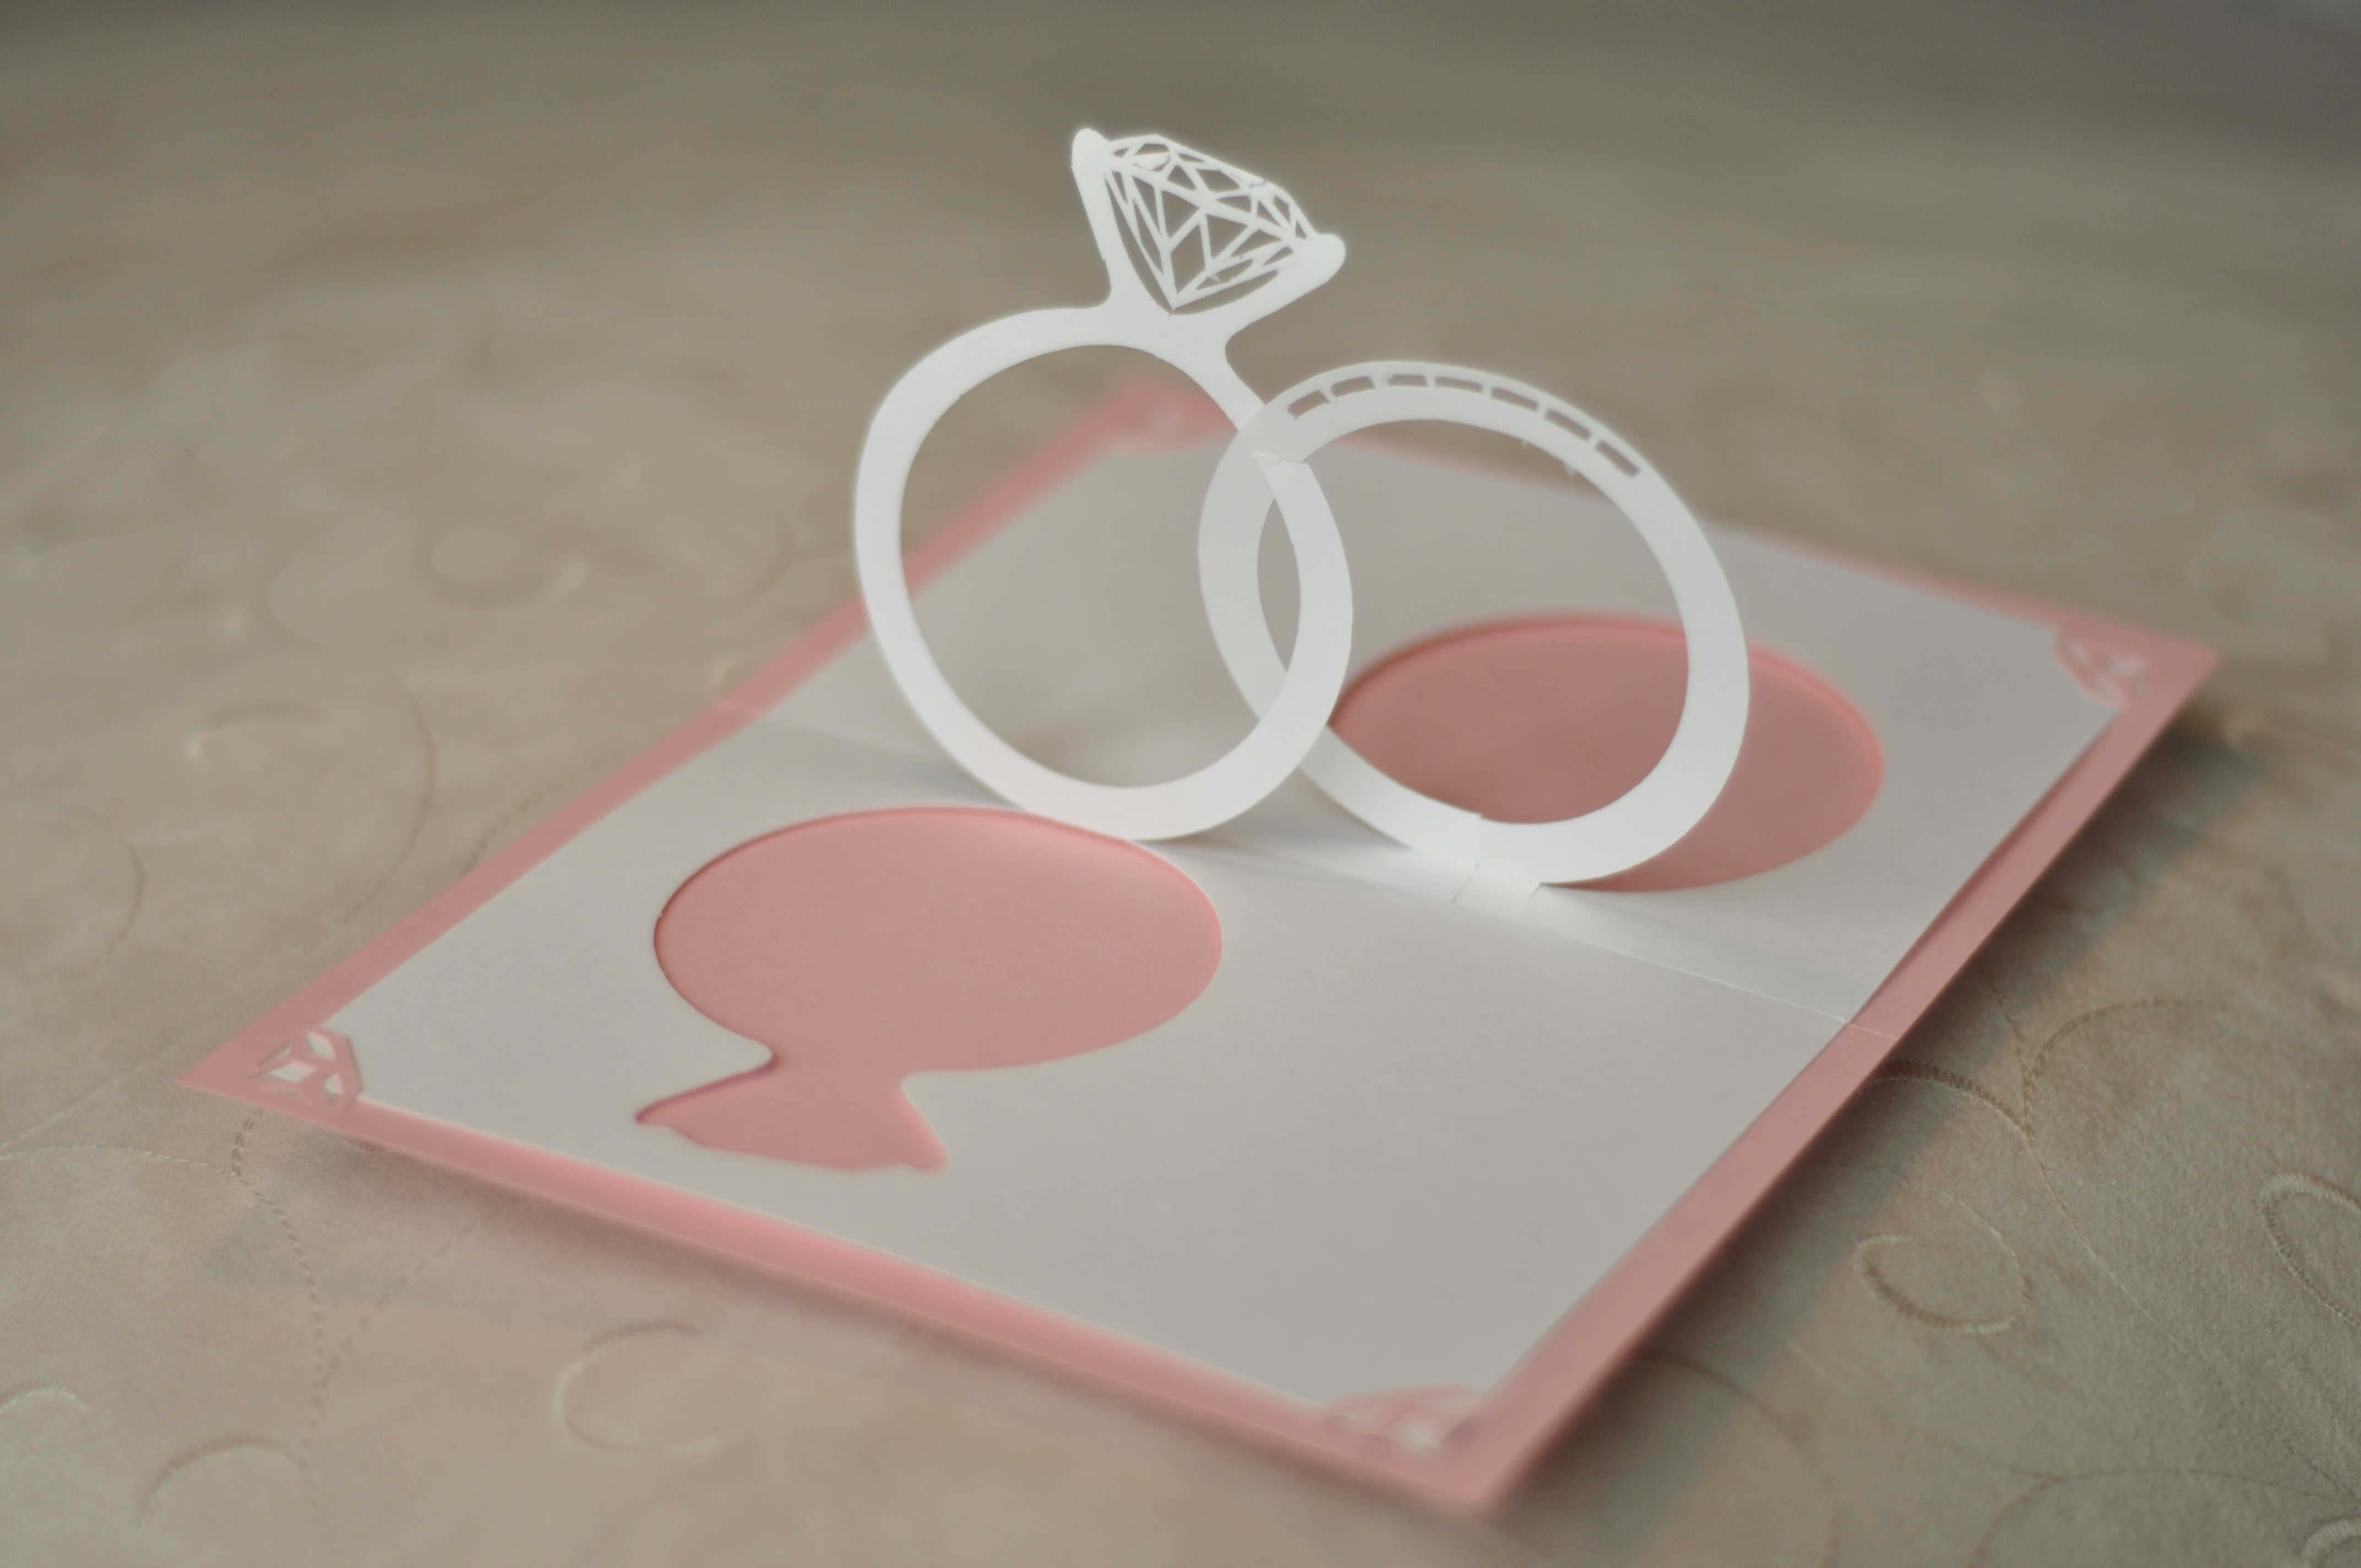 Wedding Invitation Pop Up Card: Linked Rings - Creative Pop pertaining to Pop Up Wedding Card Template Free